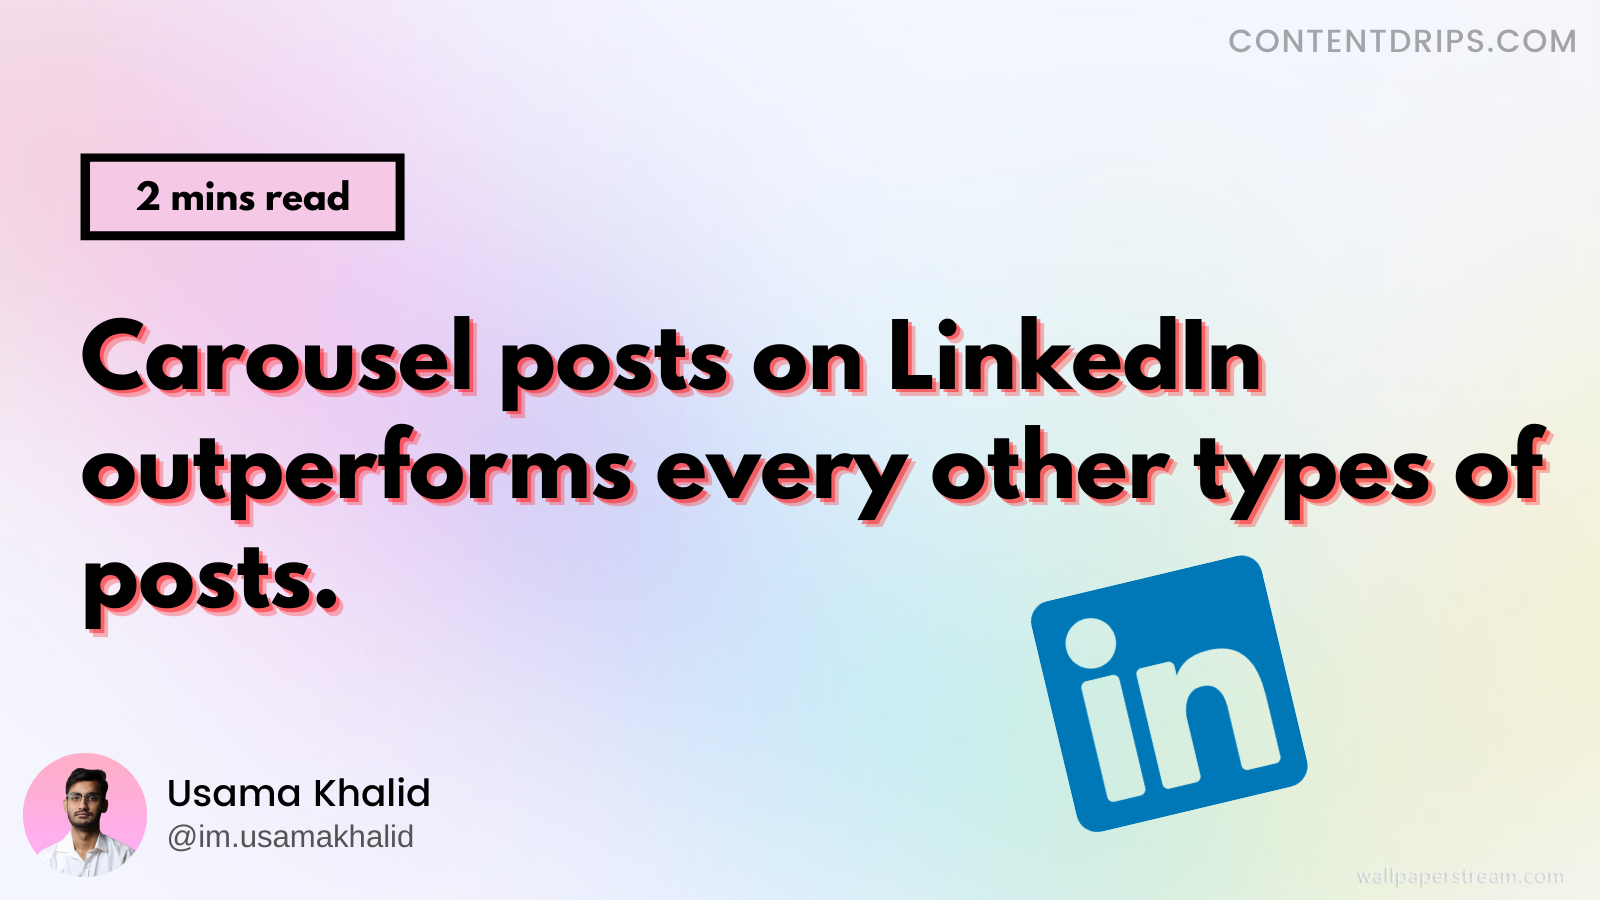 Carousel posts on LinkedIn outperforms all other posts. Here's how to go heavy on them in 2021.